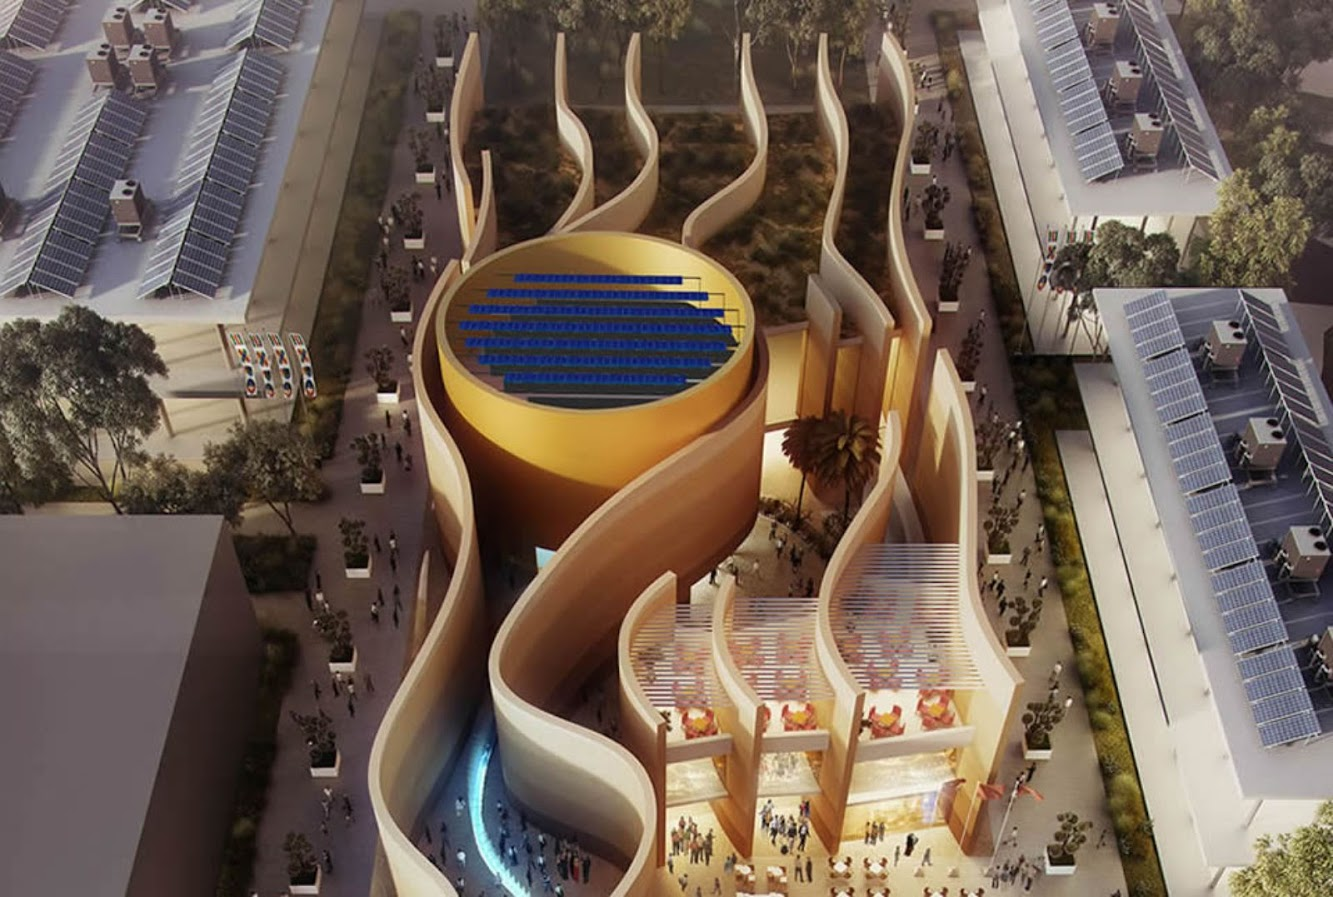 Milano, Italia: Uae Pavilion Expo 2015 by Foster + Partners